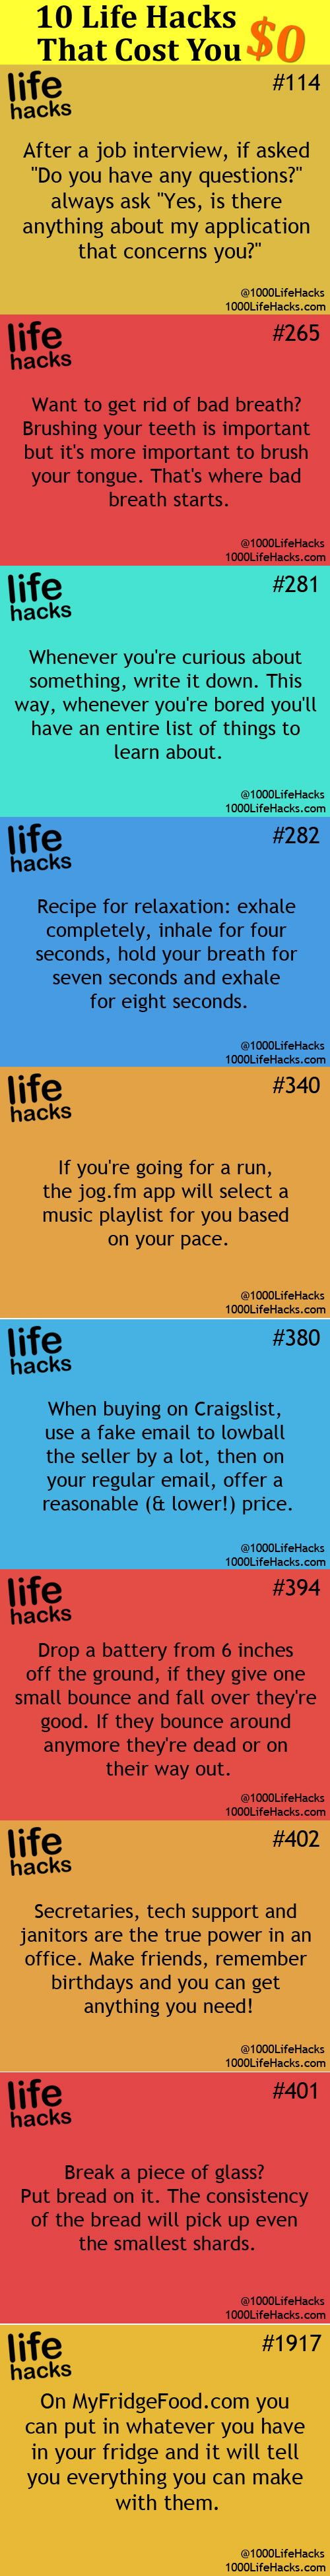 Those 10 selected life hacks include some clever tips to solve bothersome daily ...